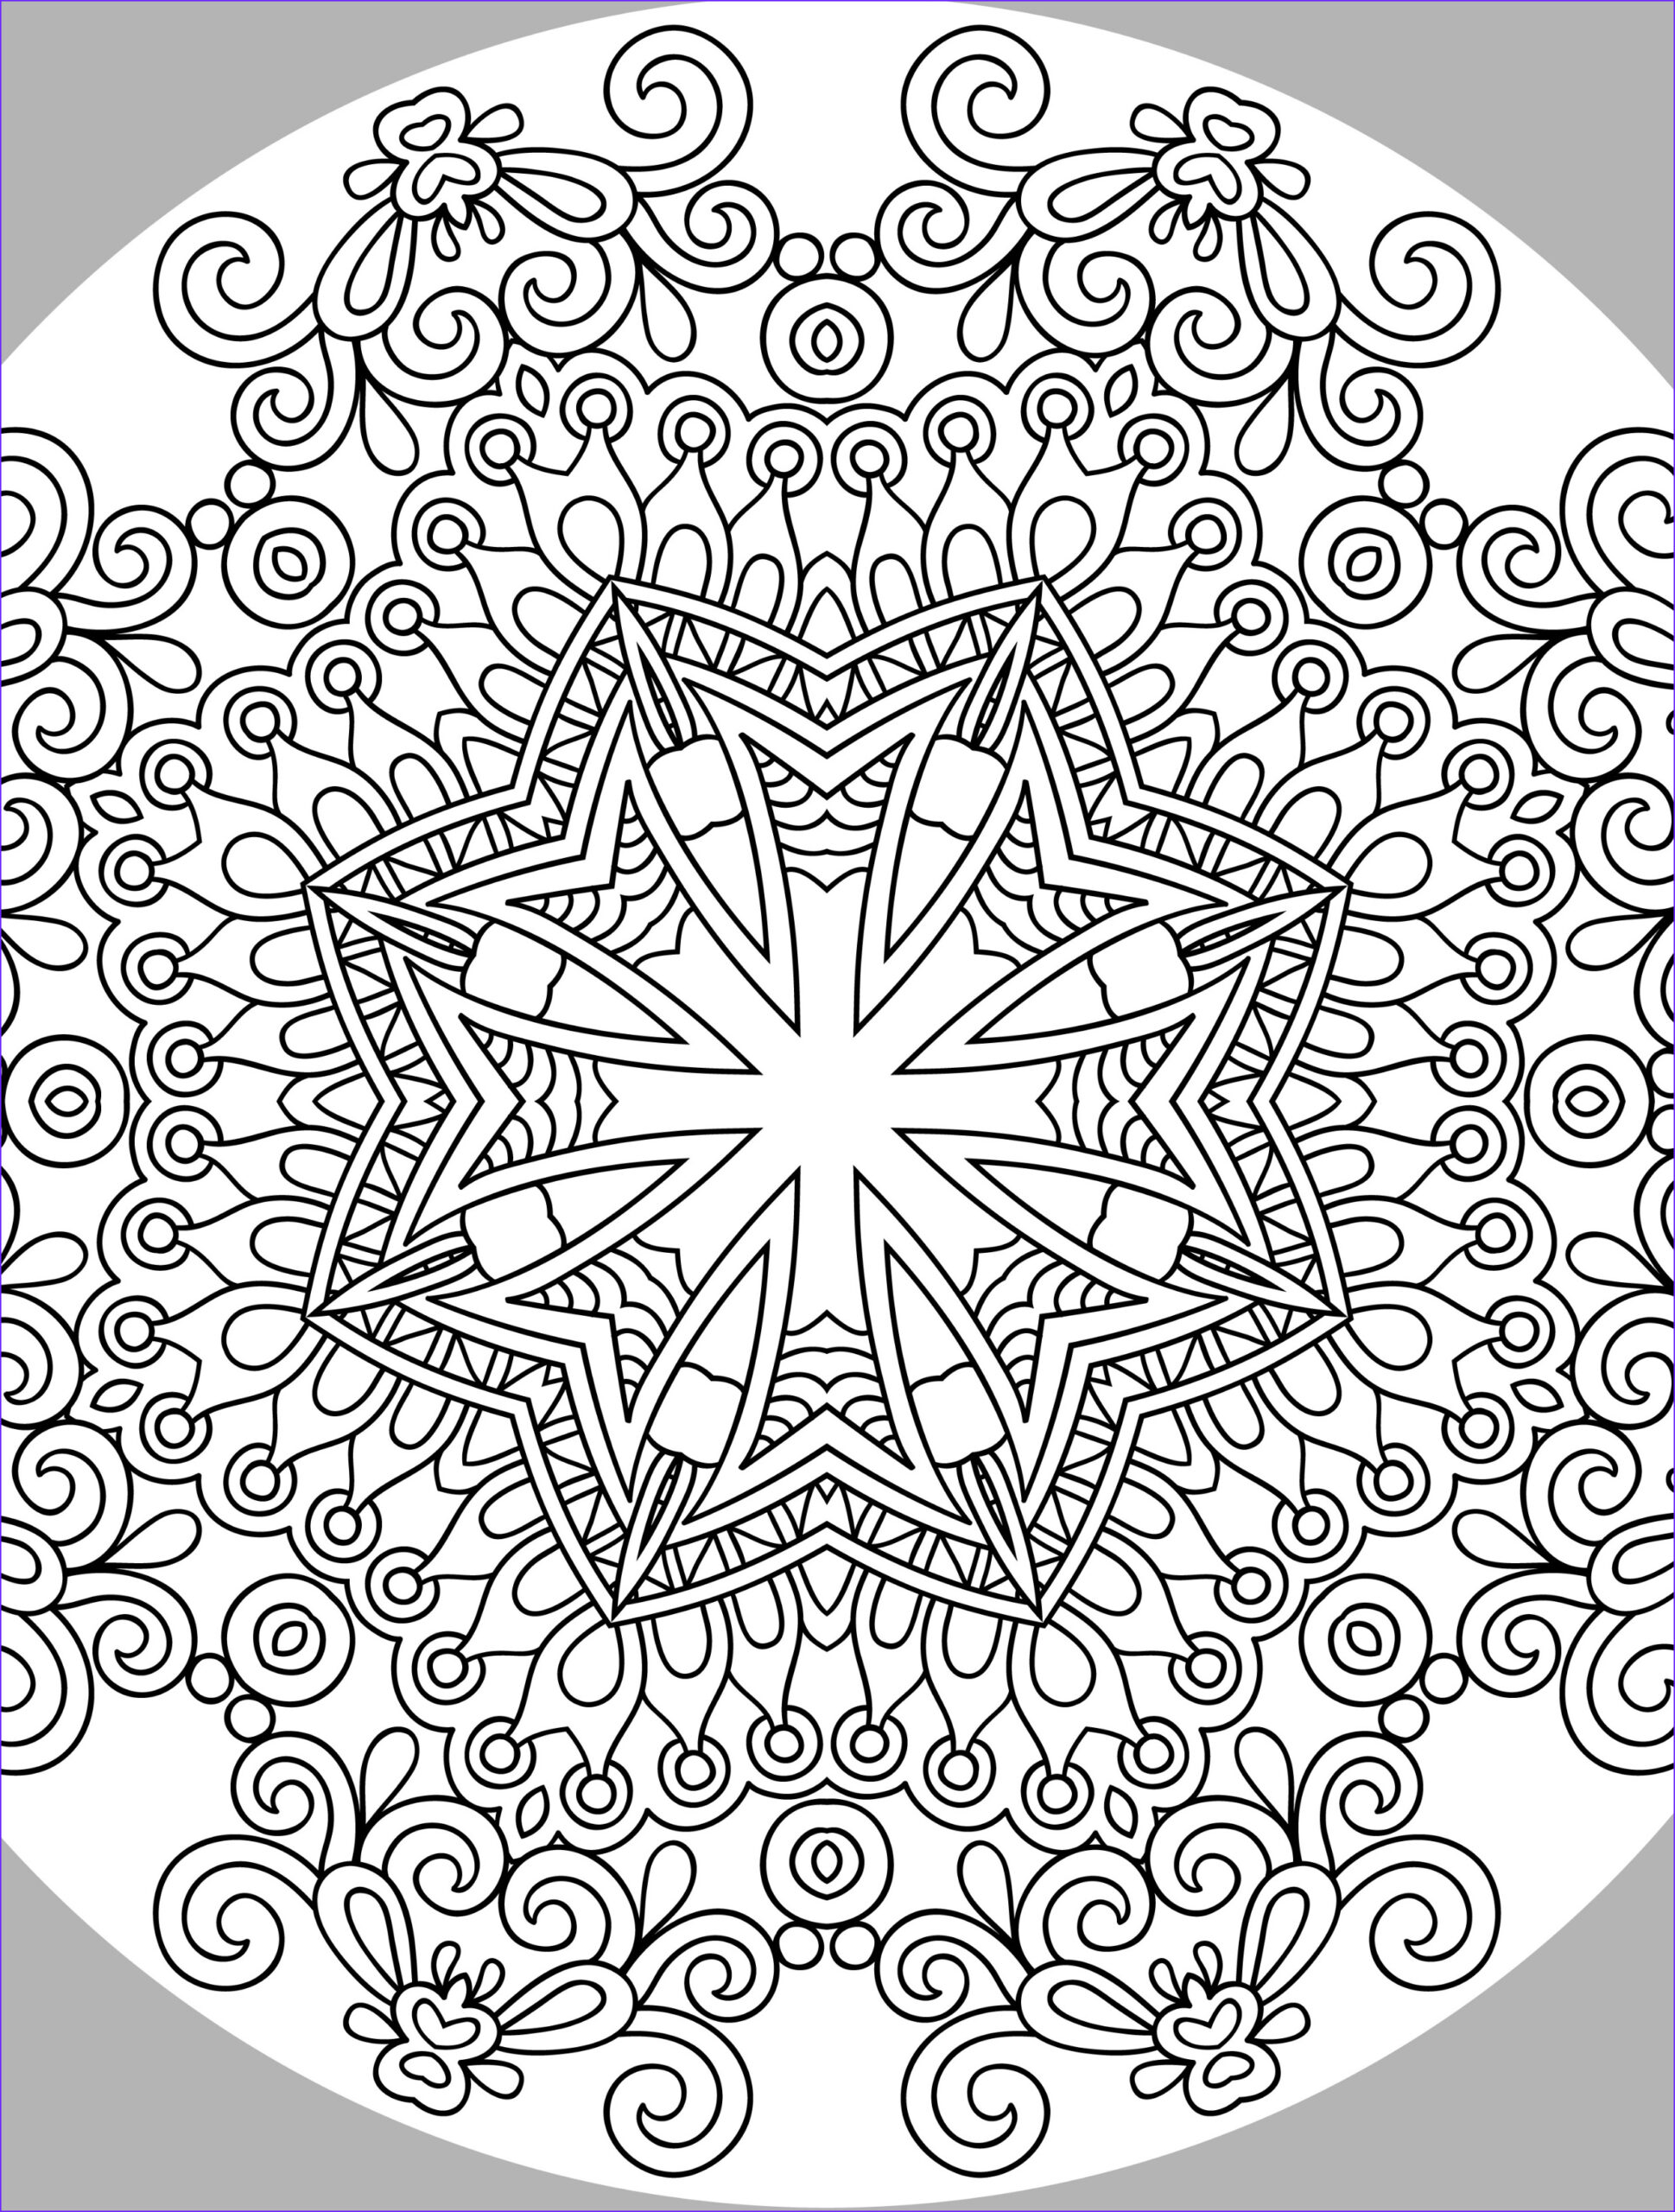 Christmas Coloring Pages Pdf Luxury Gallery Free Printable Coloring Pages for Adults Pdf at